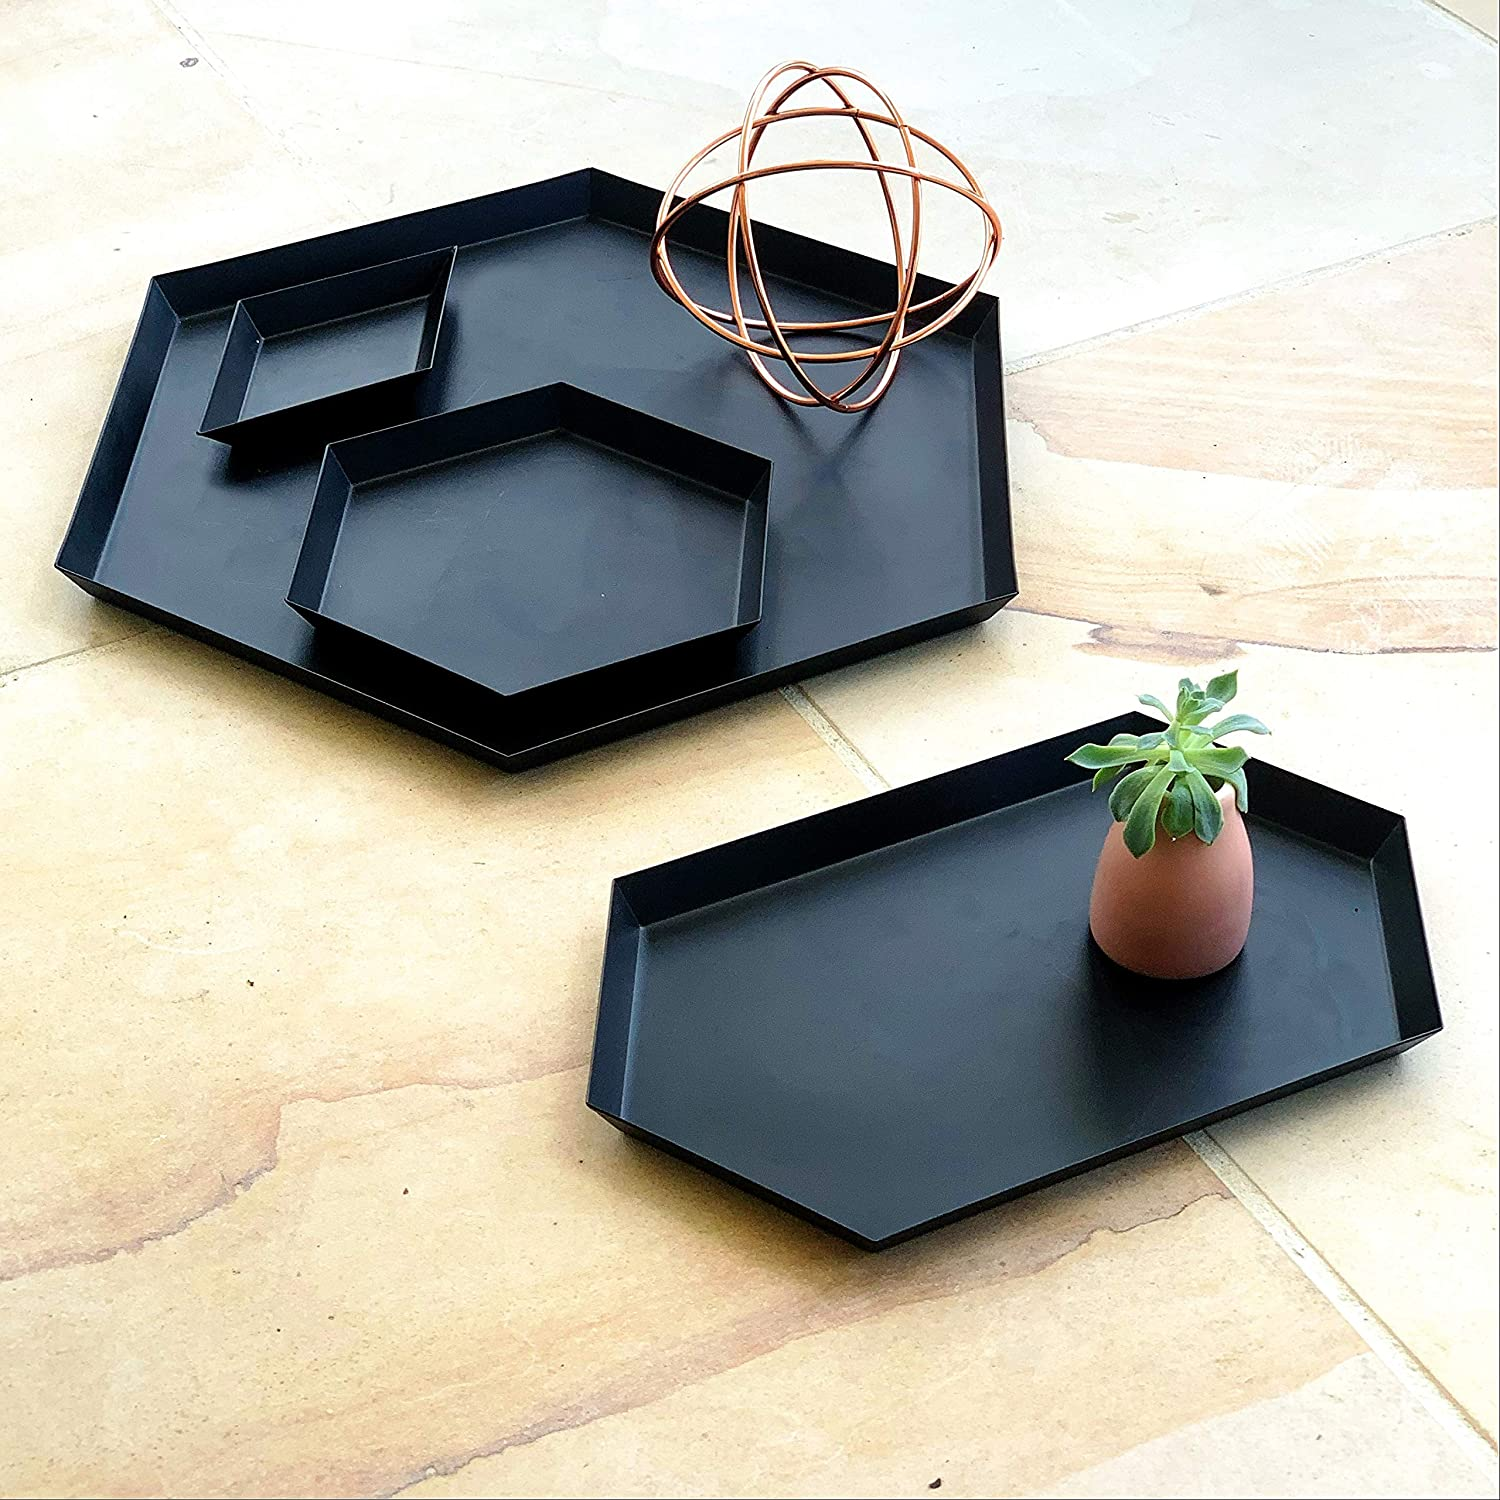 Serving Trays Coffee Table Bathroom Decor - Set of 4 Steel Geometric Matte Black Trays for Ottomans, Office Desk, Kitchen, Bedroom, Study | Displayed in Beautiful Gift Box